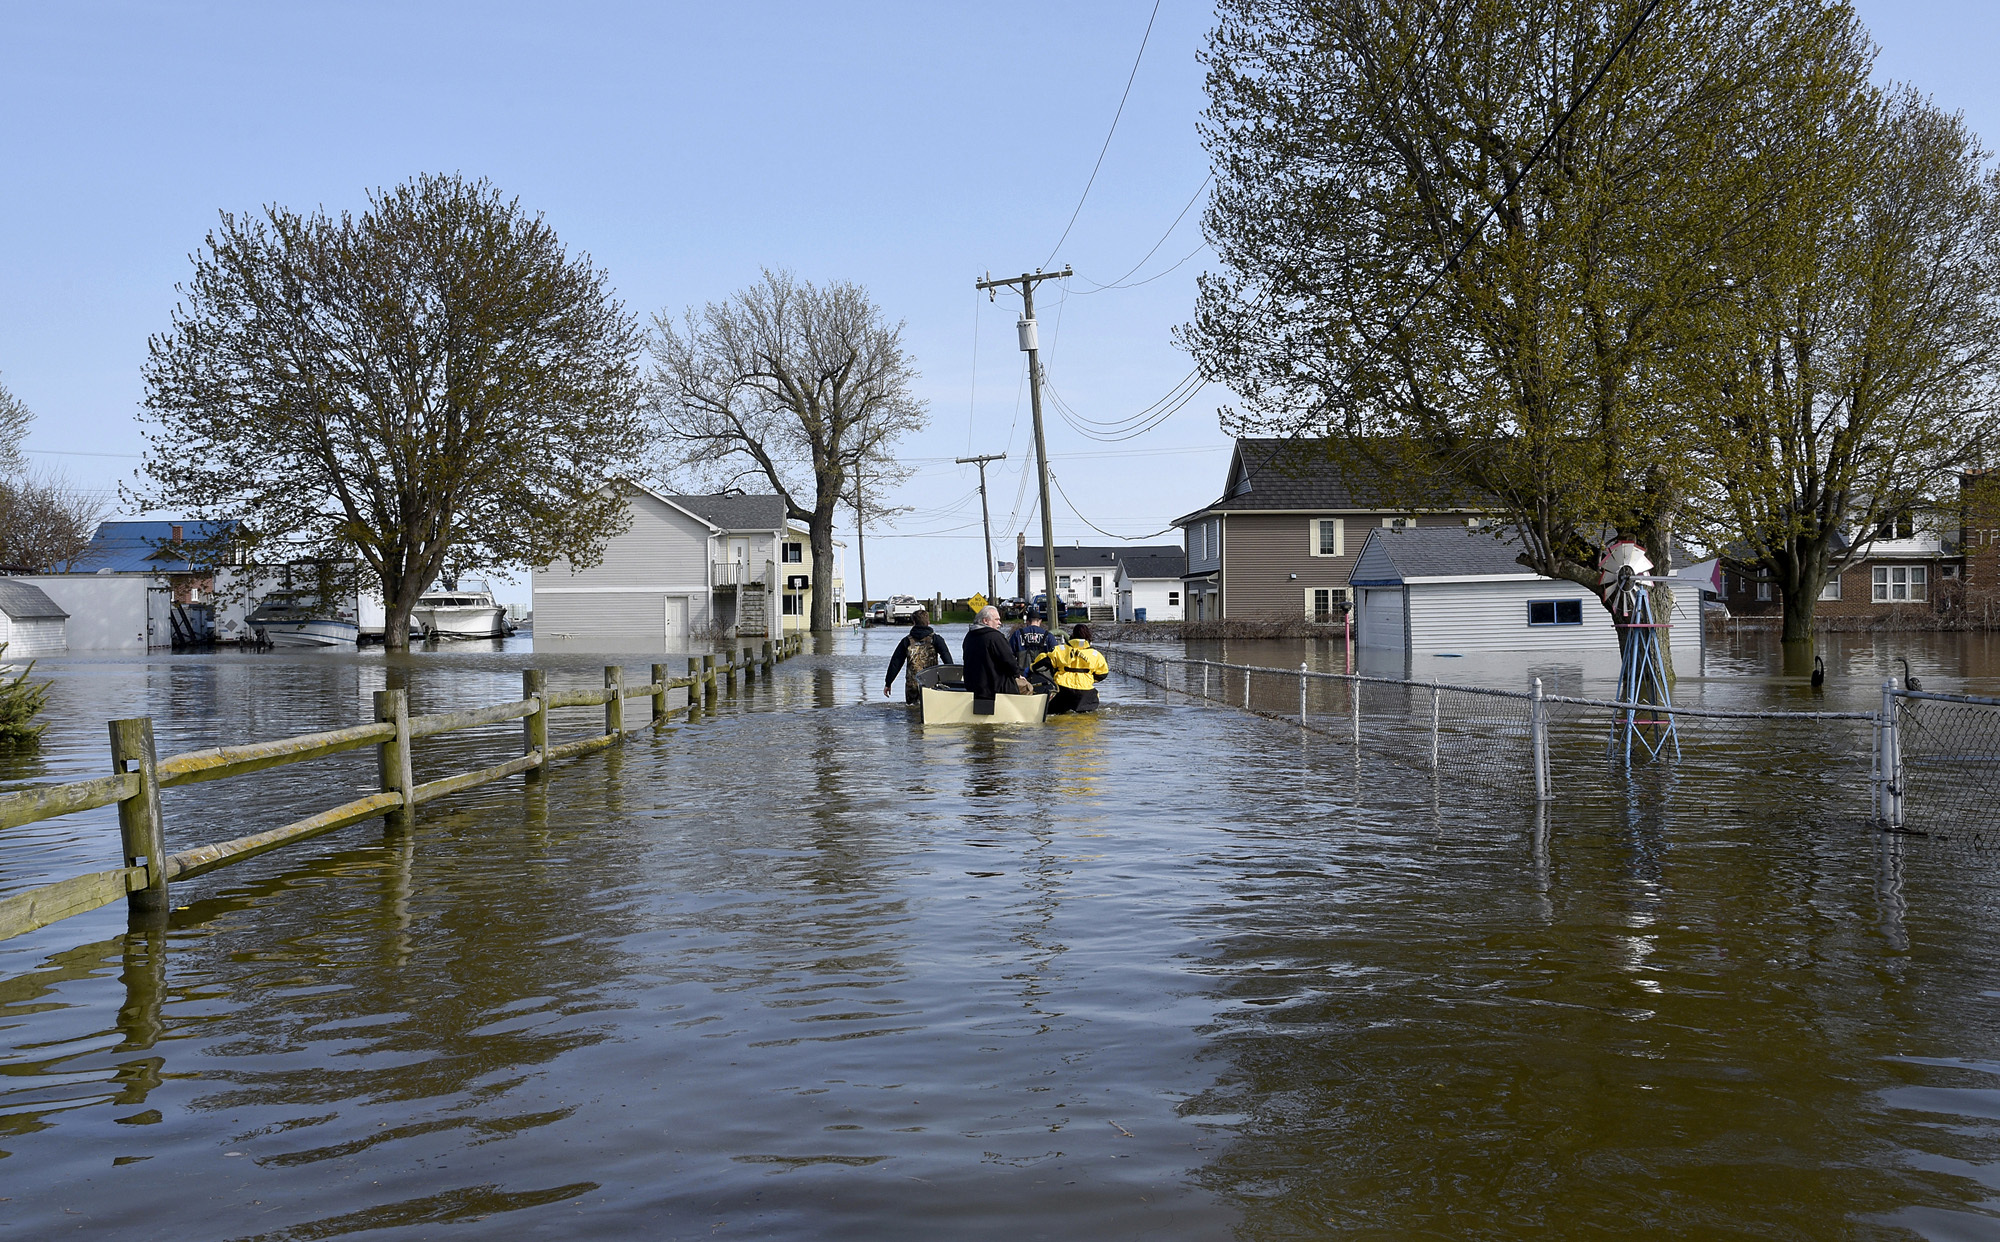 Spring_Flooding_Michigan_42209-159532.jpg57623847